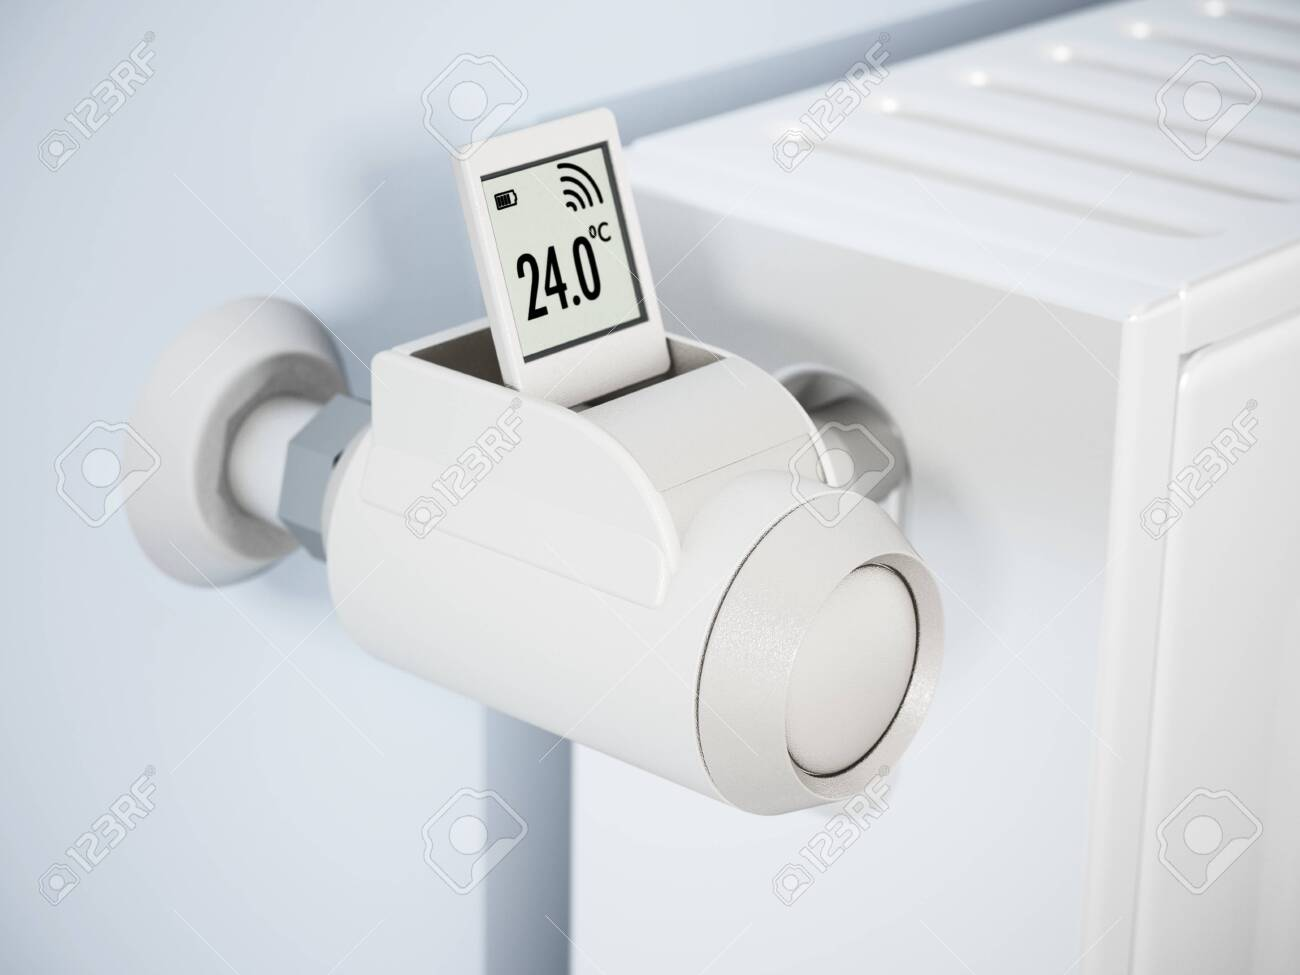 Smart Thermostatic Radiator Valve With Lcd Screen 3d Illustration Stock Photo Picture And Royalty Free Image Image 146670560